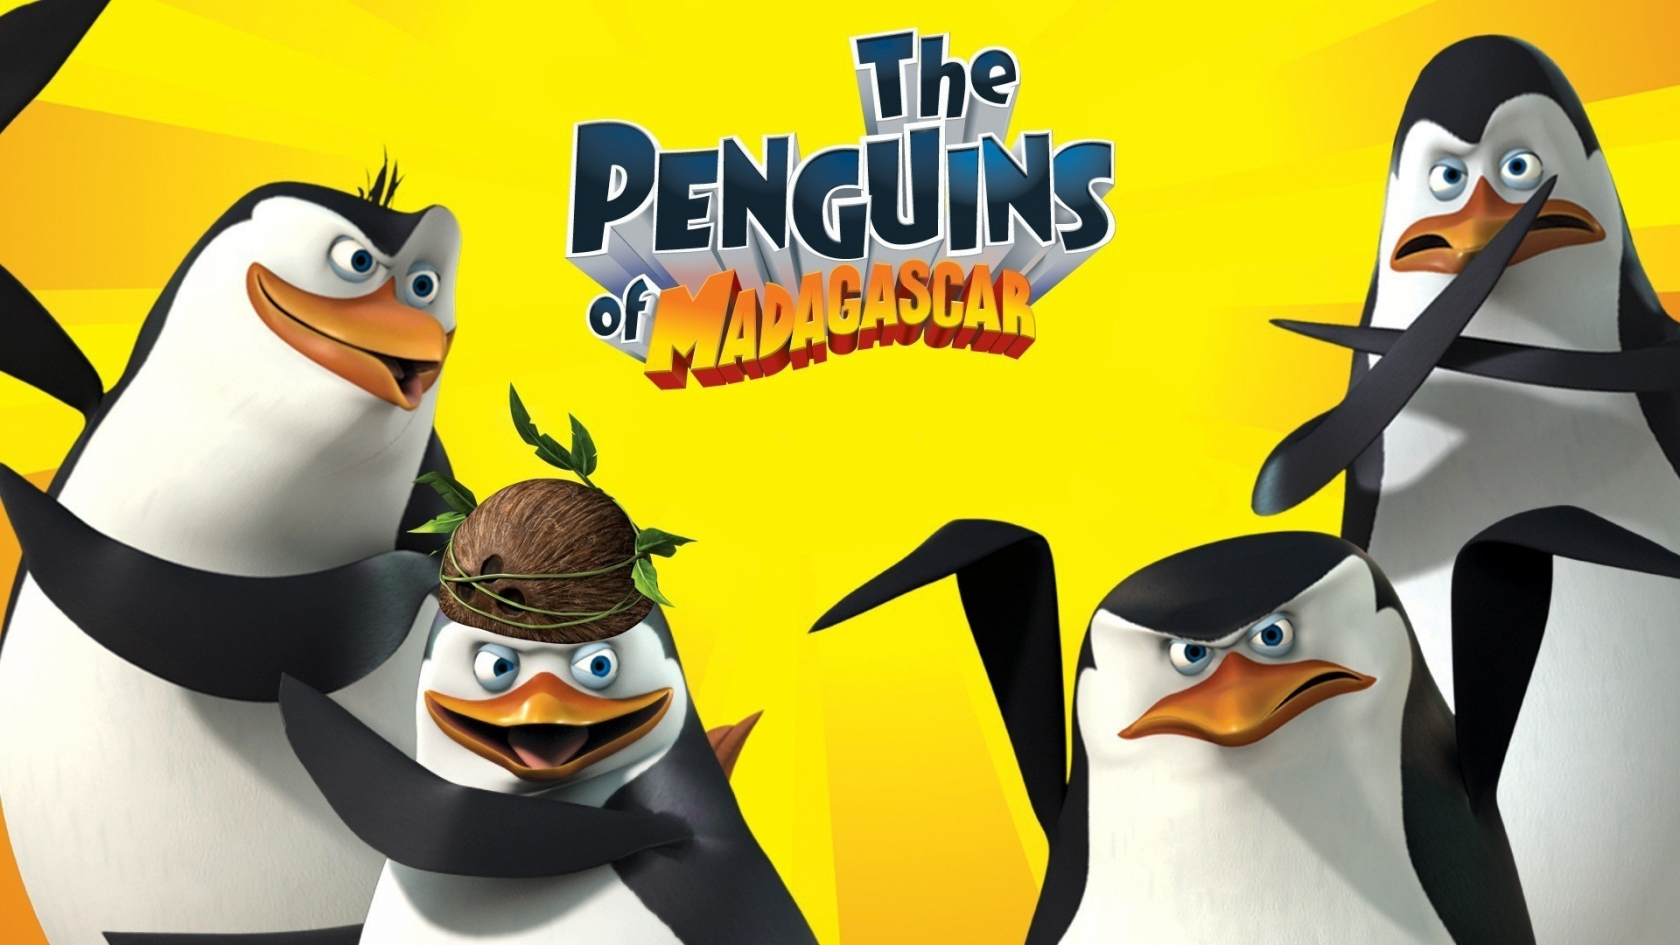 The Penguins Of Madagascar for 1680 x 945 HDTV resolution